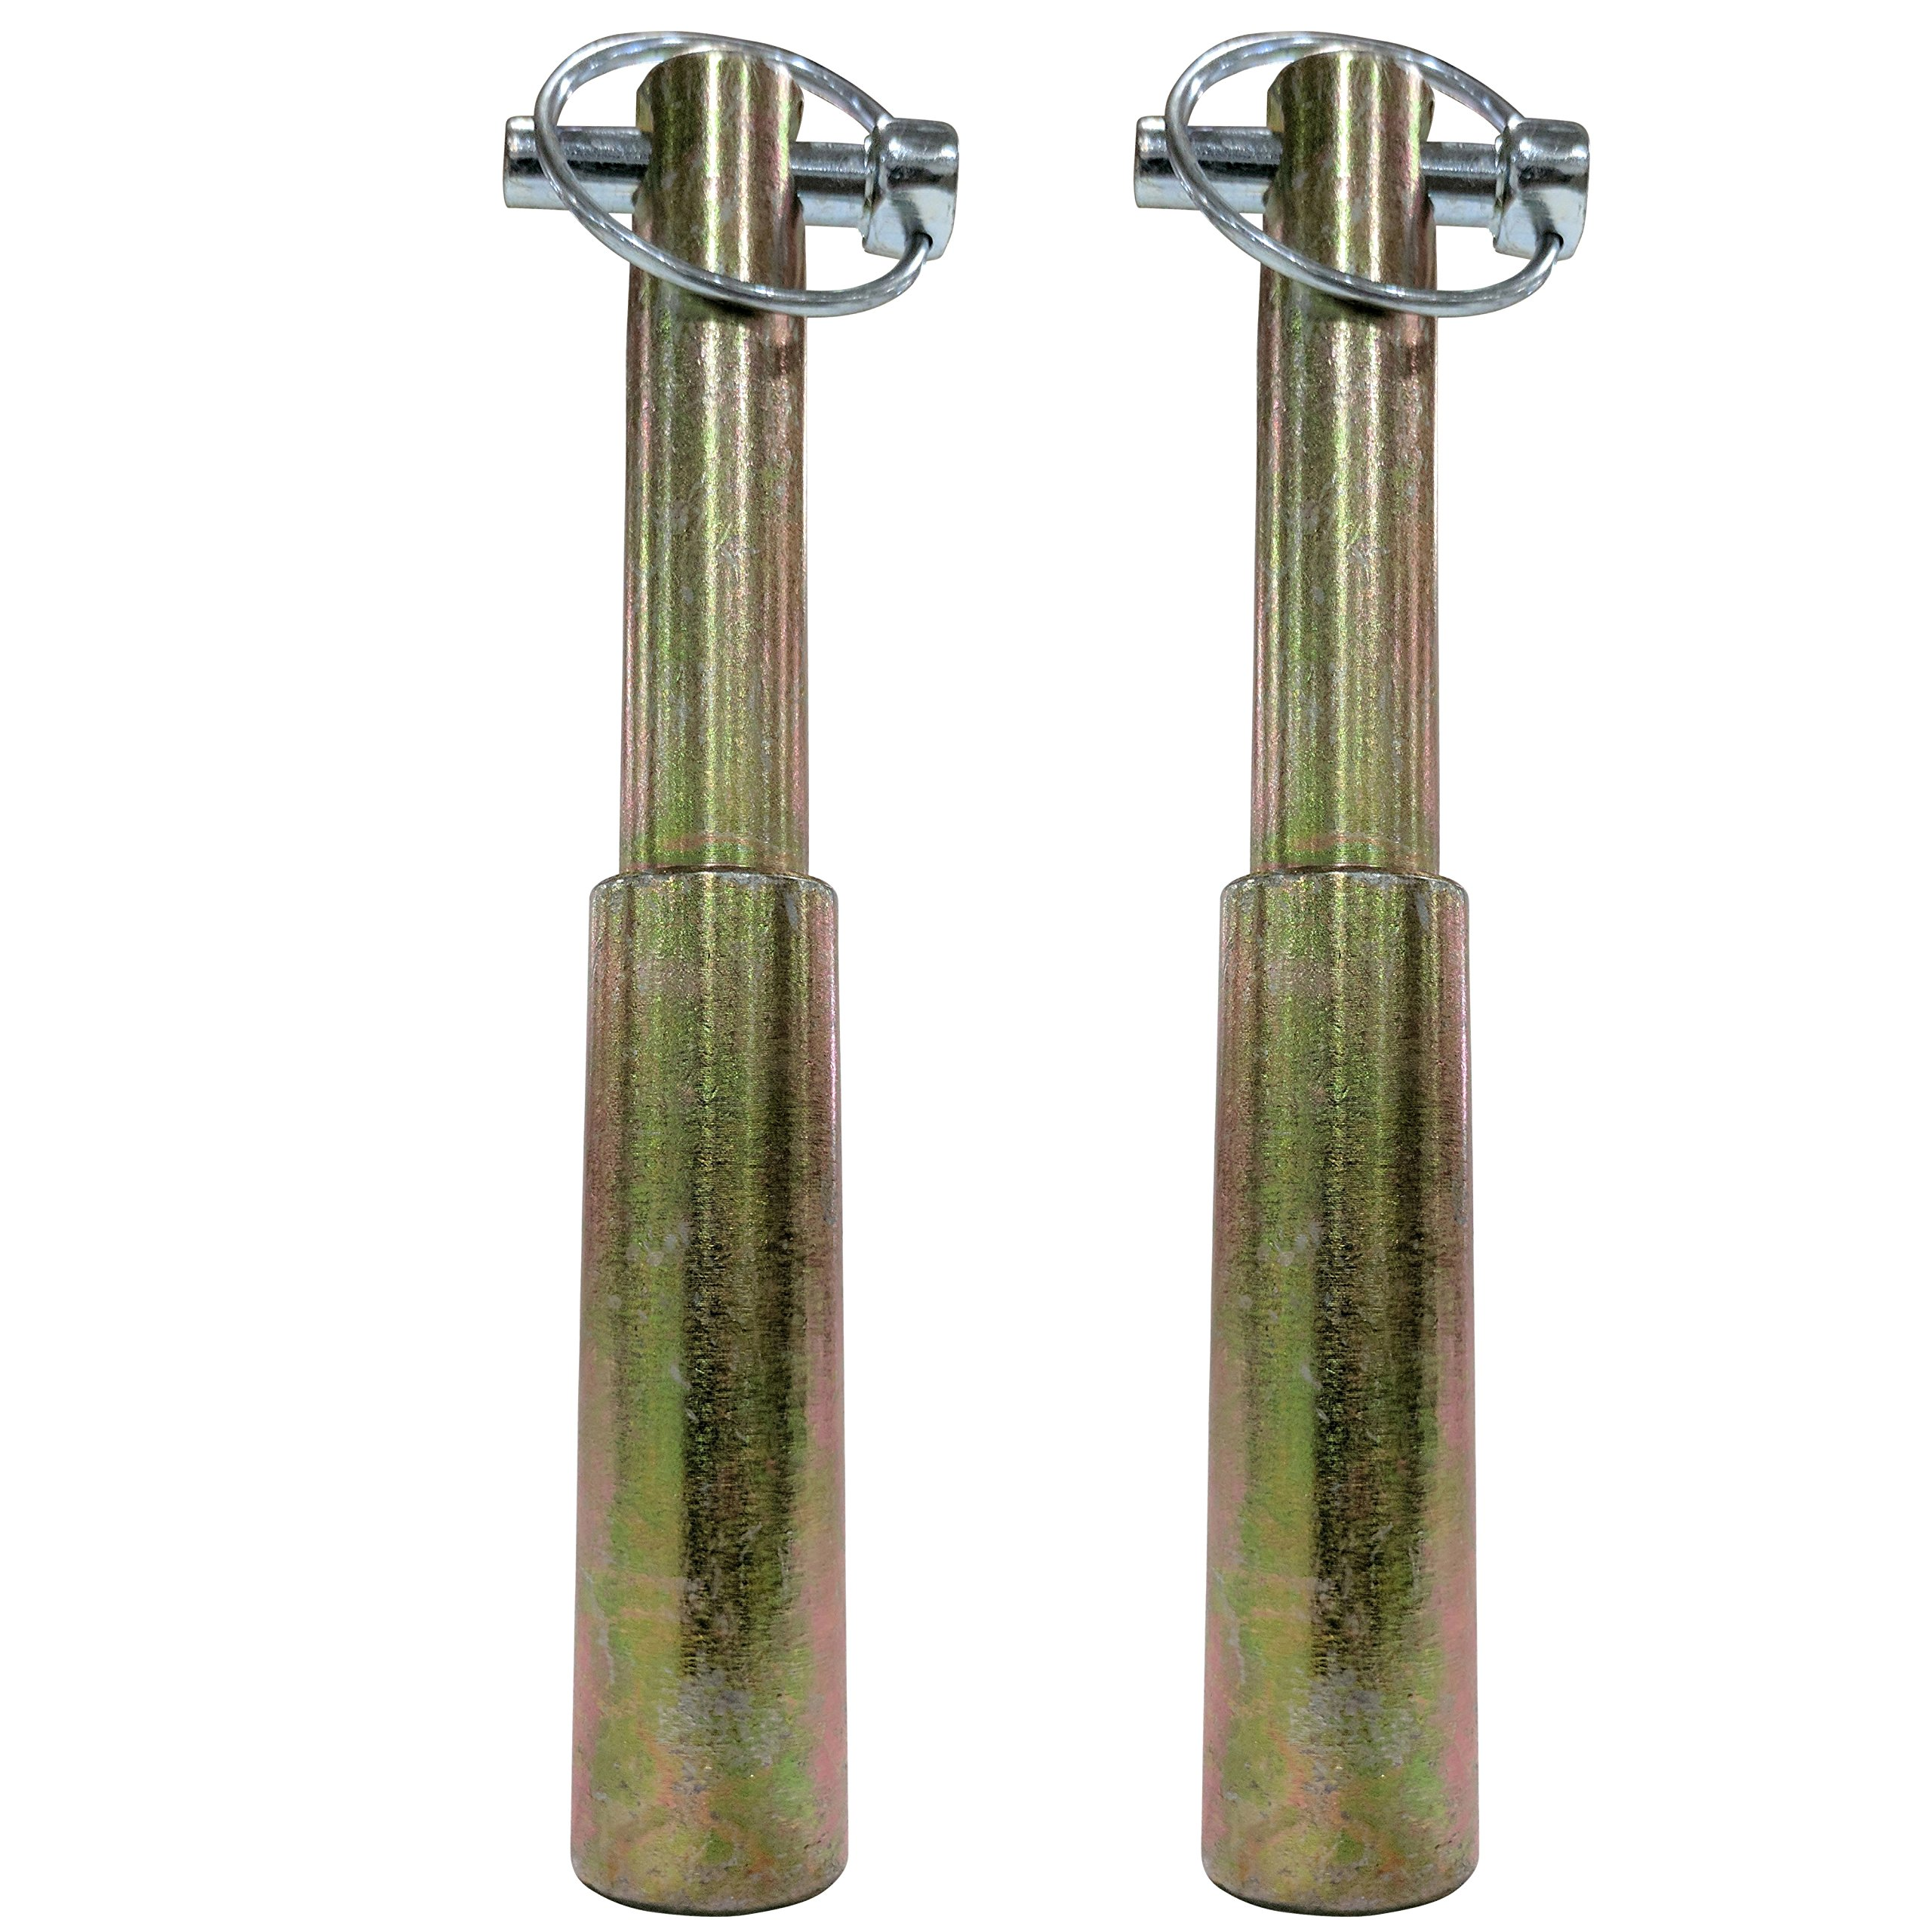 Titan (2) Stepped Lower Lift Pin (CAT 1 & 2) by Titan Attachments